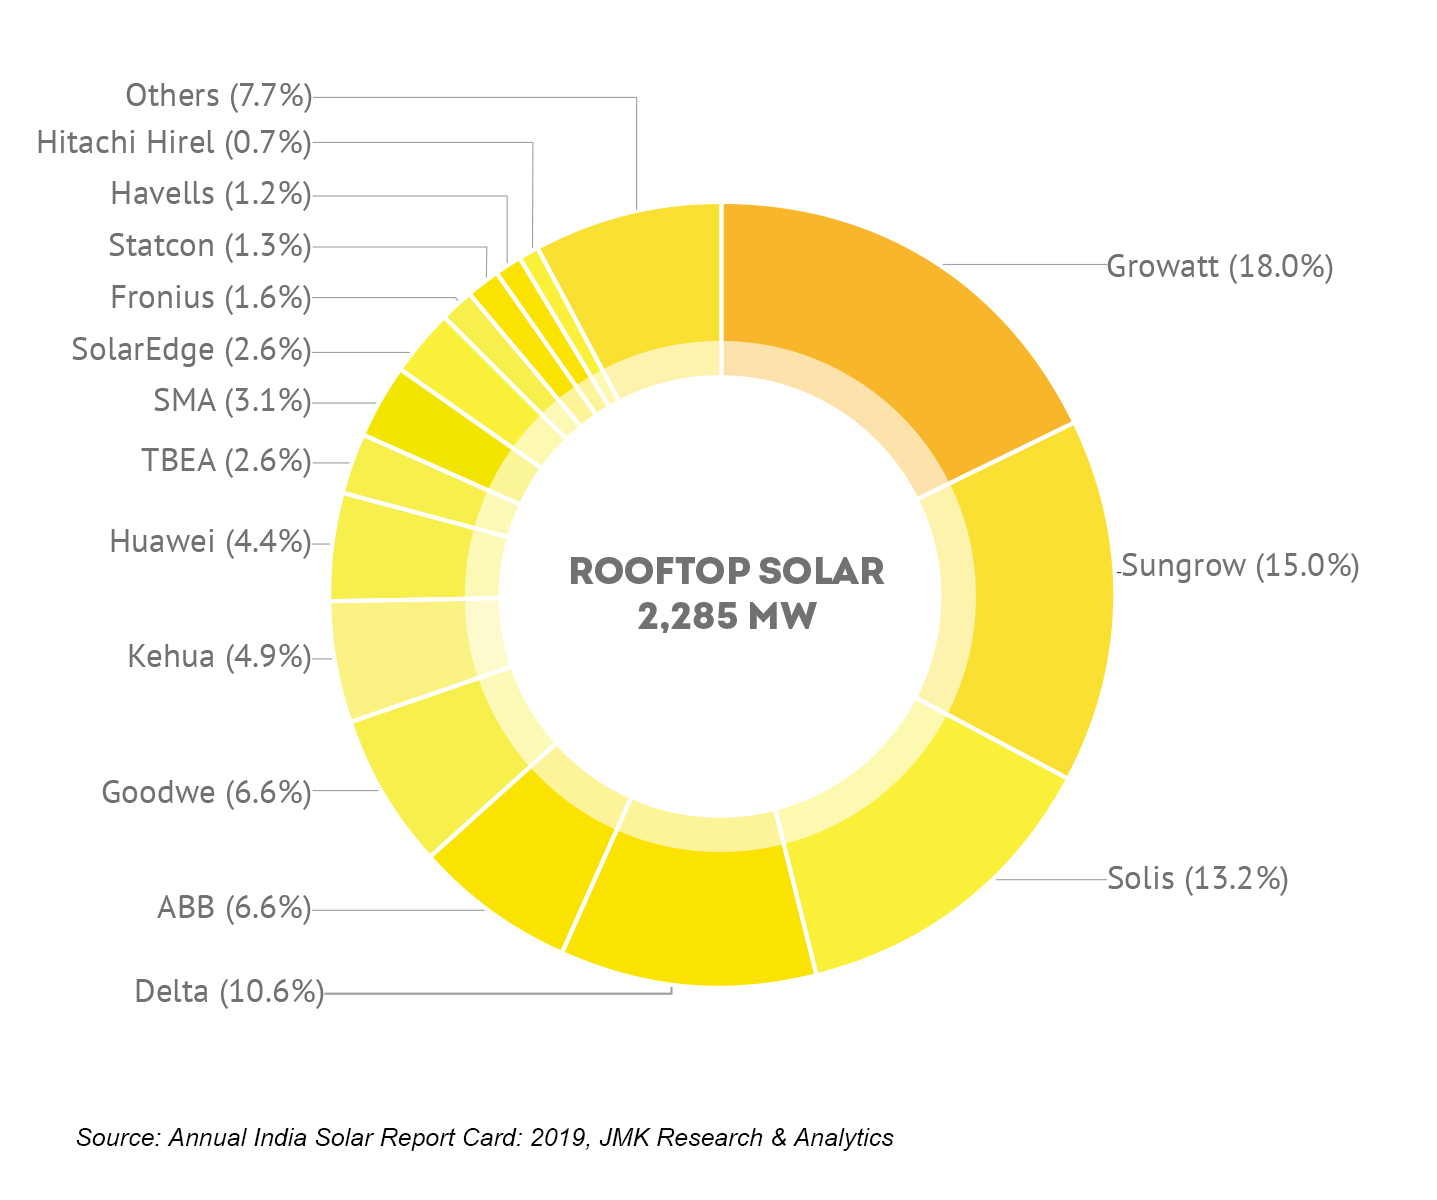 The PV inverter rooftop solar market in India was led by Growatt with 18% market share in 2019. Image: JMK Research